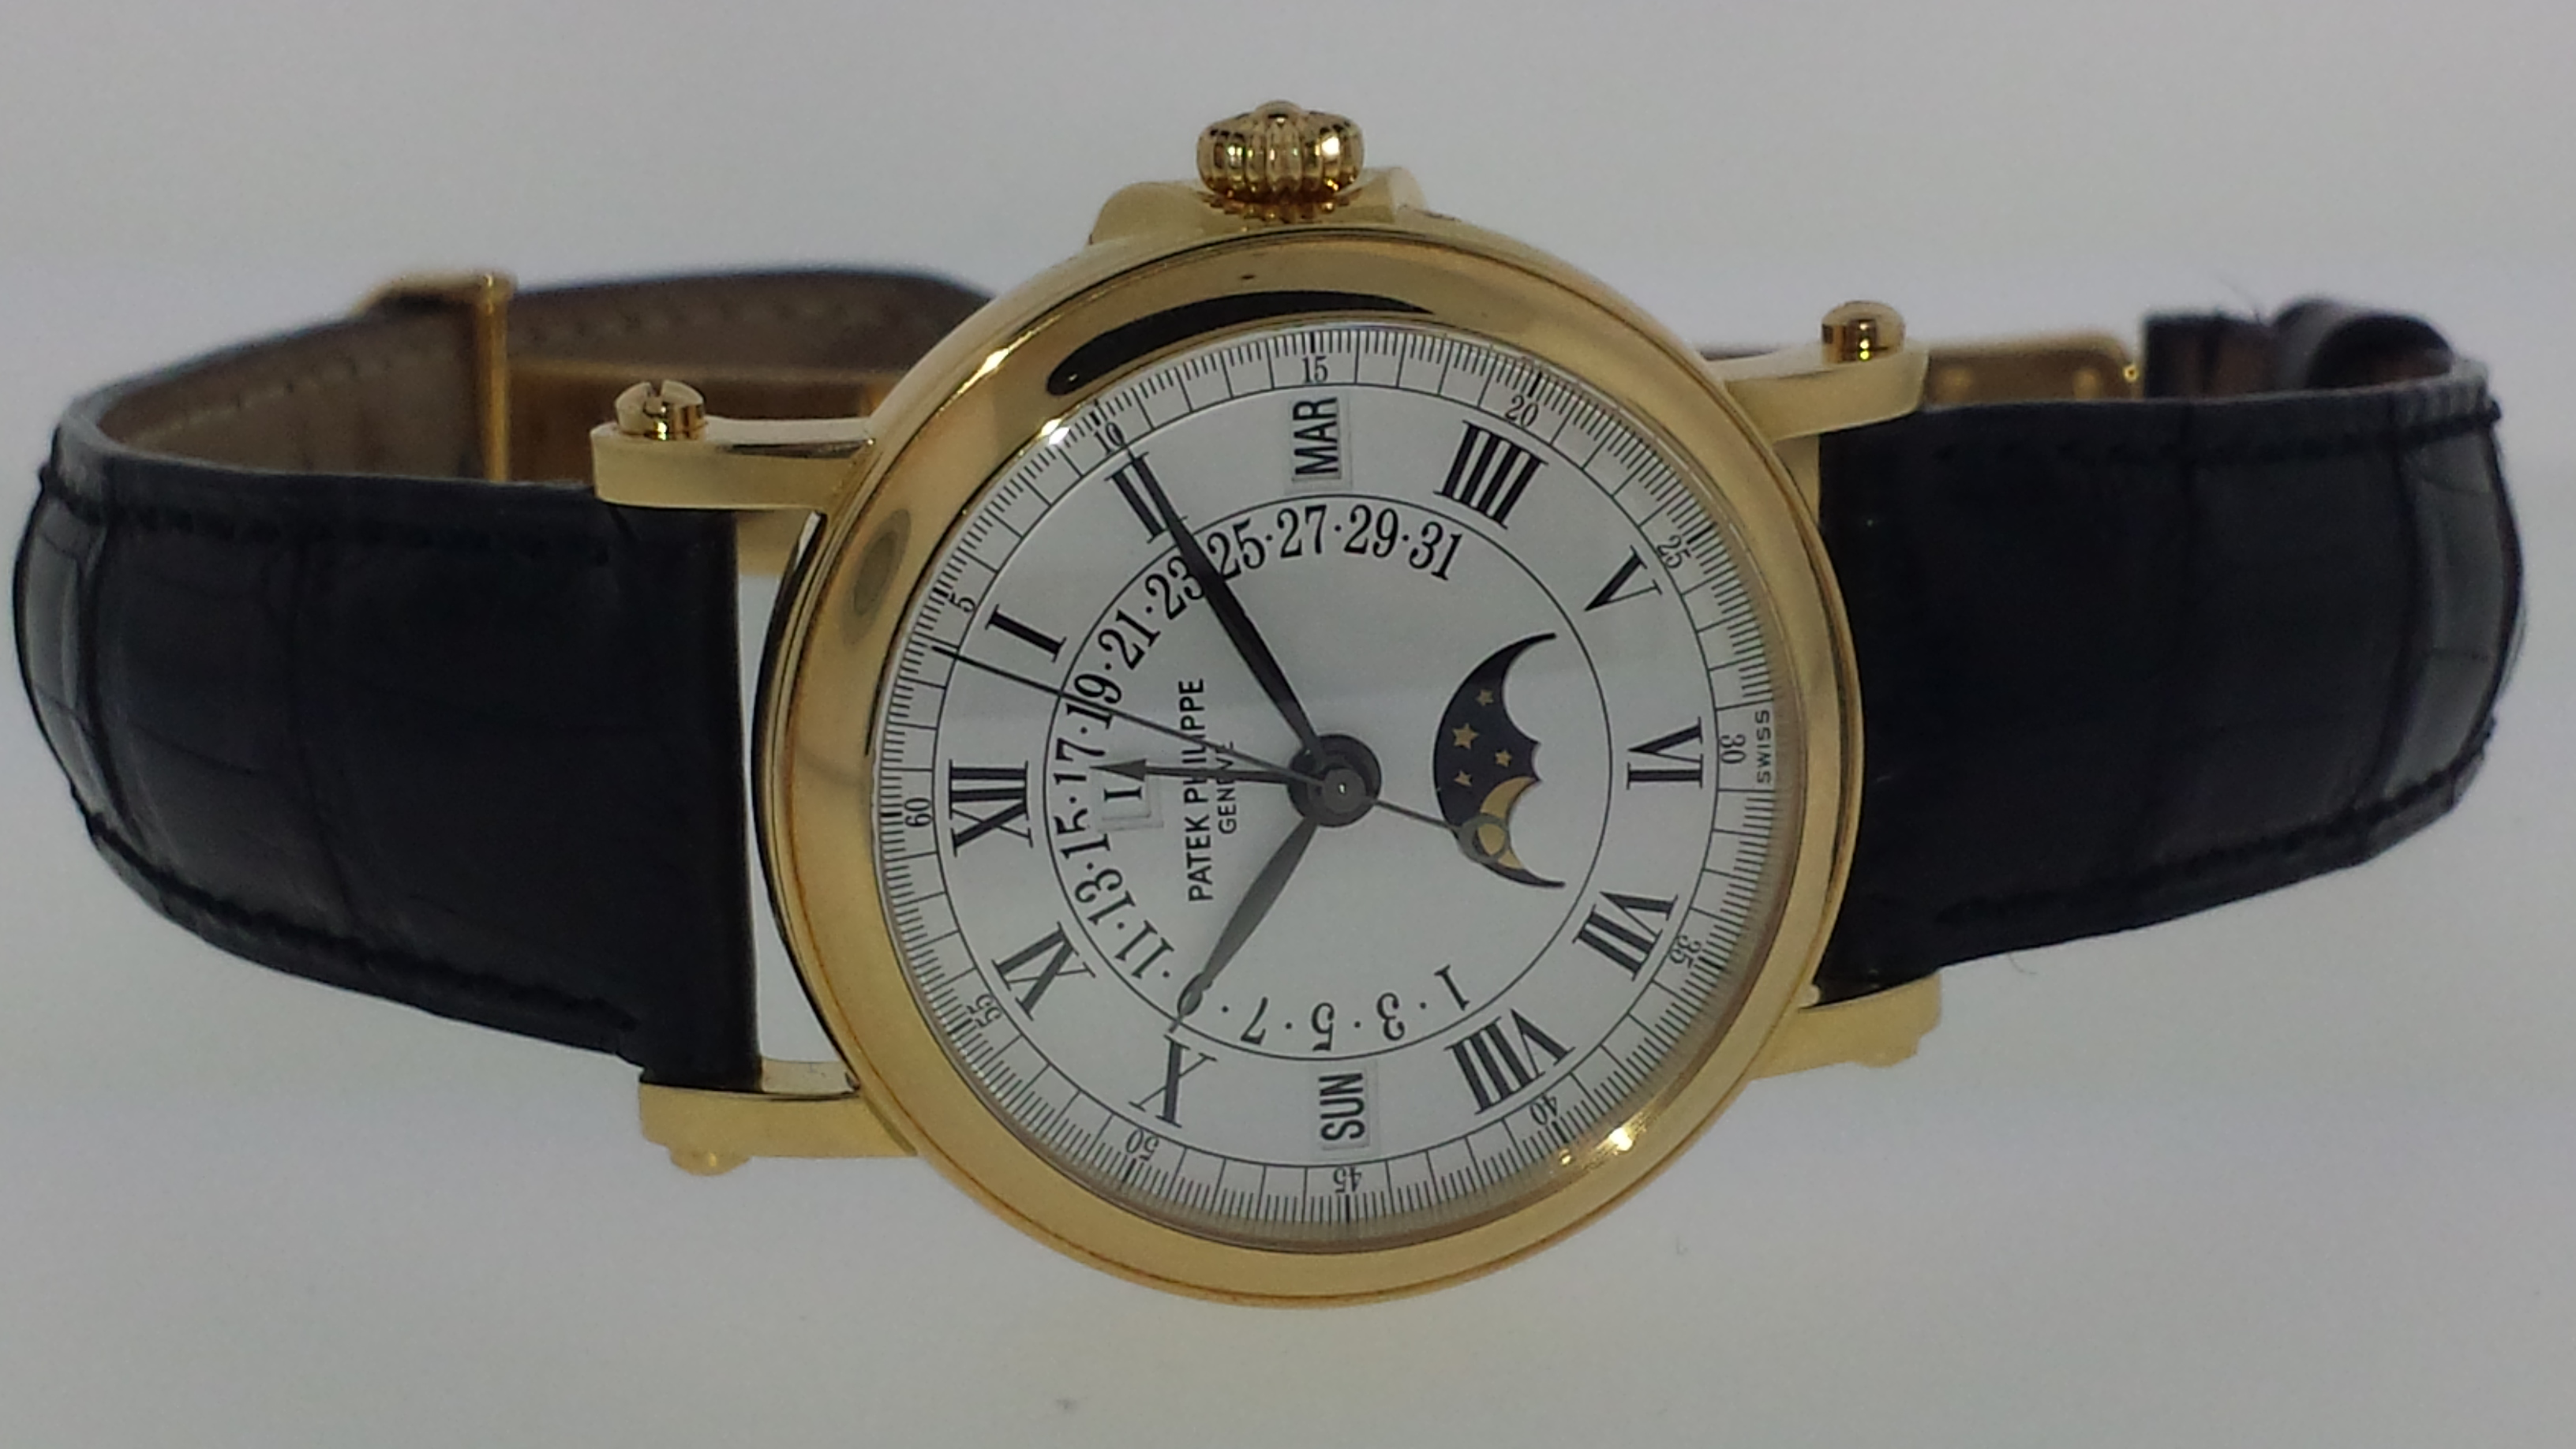 vacheron used rose watches patrimony product watchestimeless gold timeless constantin ref ultra flat